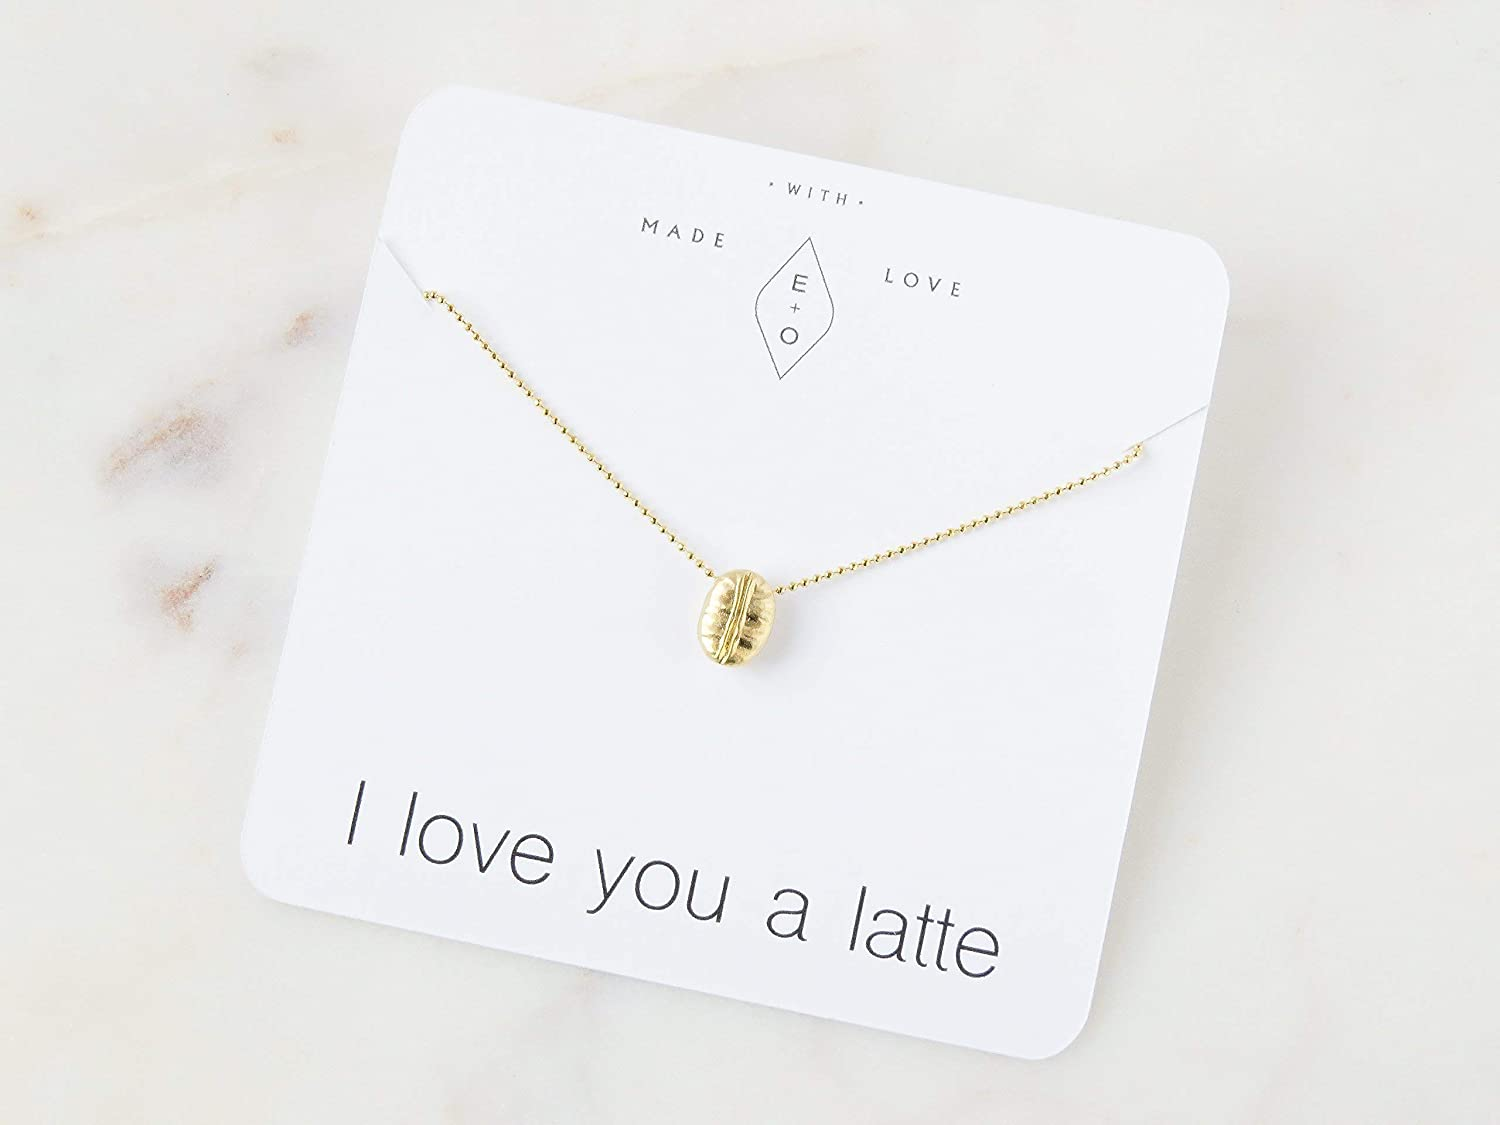 Coffee Bean Latte Lover Charm Necklace Gift for Her Gold-Plated 16 Length